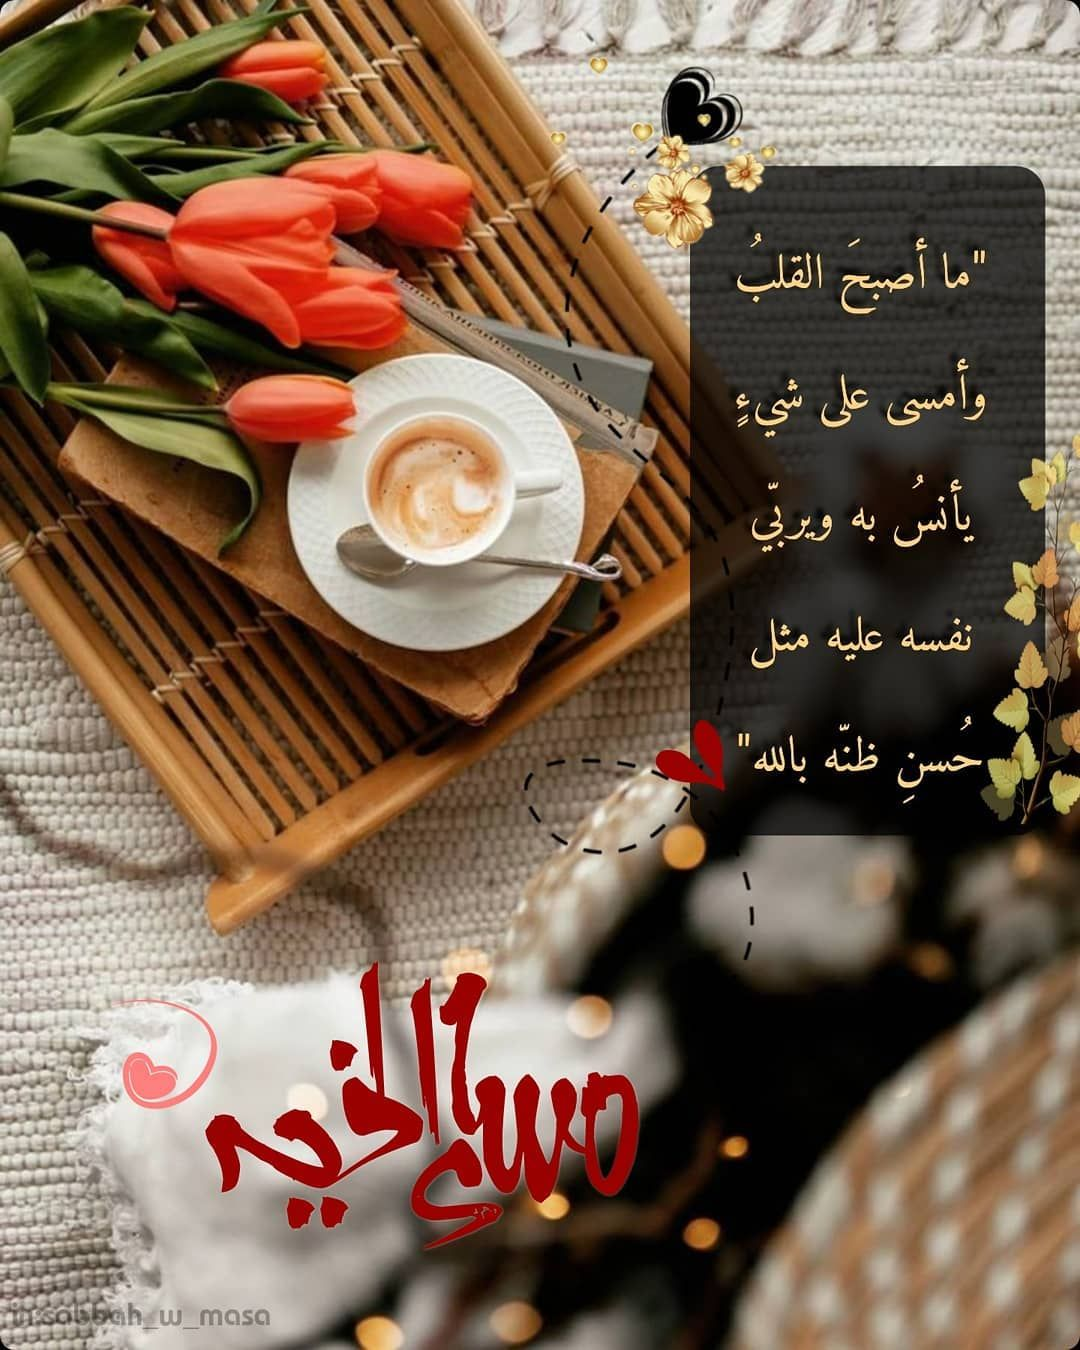 صبح و مساء On Instagram مساء الخير مساء الورد تصميم تصام Good Morning Beautiful Images Evening Quotes Good Morning Beautiful